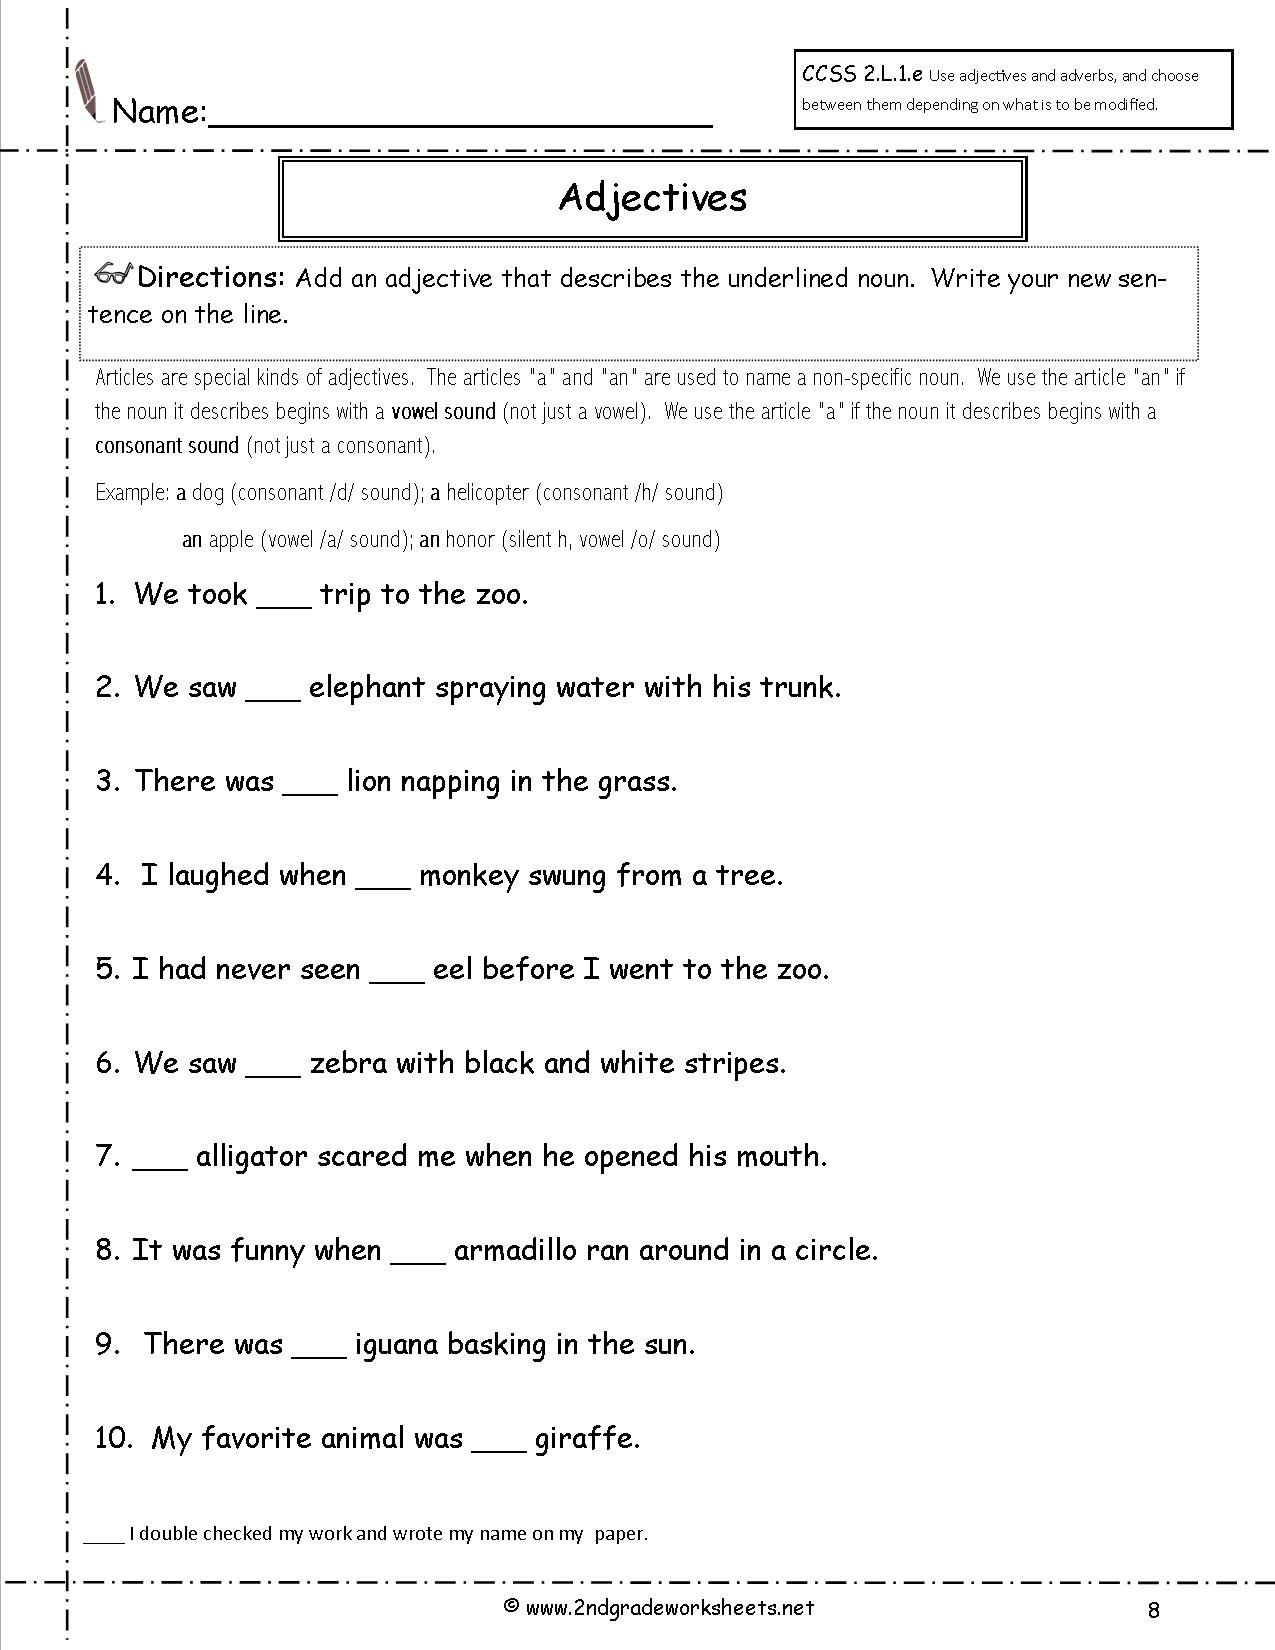 Free Language/grammar Worksheets And Printouts - Free Printable Grammar Worksheets For Highschool Students